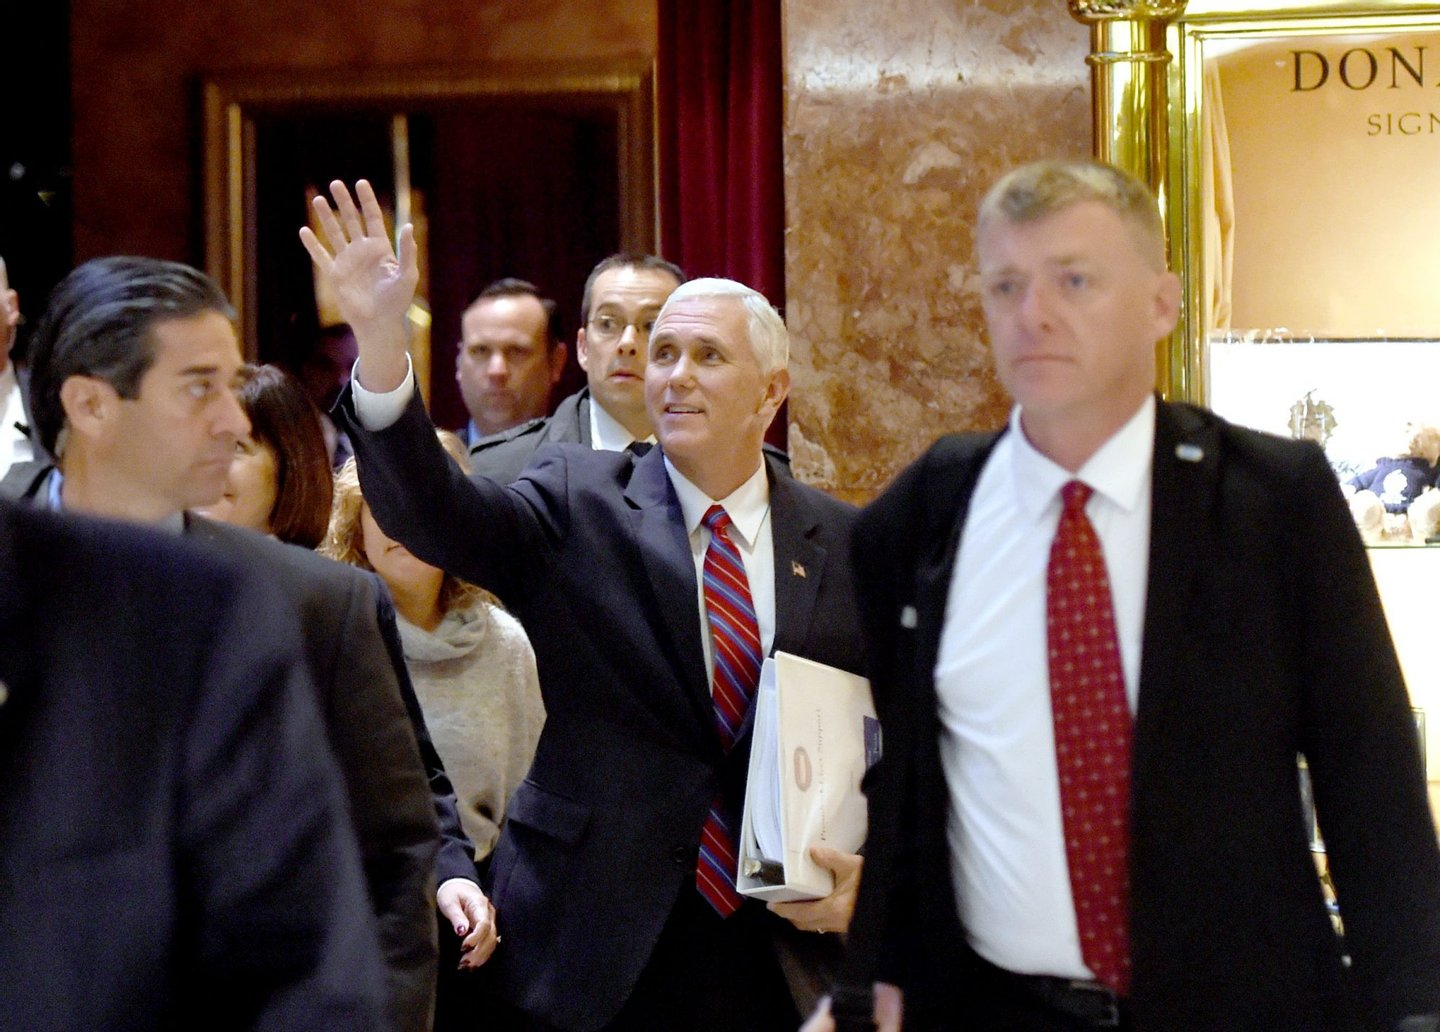 Vice President-elect Mike Pence(C) arrives at Trump Tower for meetings with President-elect Donald Trump November 15, 2016 in New York. Trump,the 70-year-old Republican billionaire who takes office in just nine weeks, was to meet with Vice President-elect Mike Pence to discuss the next round of cabinet appointments. / AFP / TIMOTHY A. CLARY (Photo credit should read TIMOTHY A. CLARY/AFP/Getty Images)